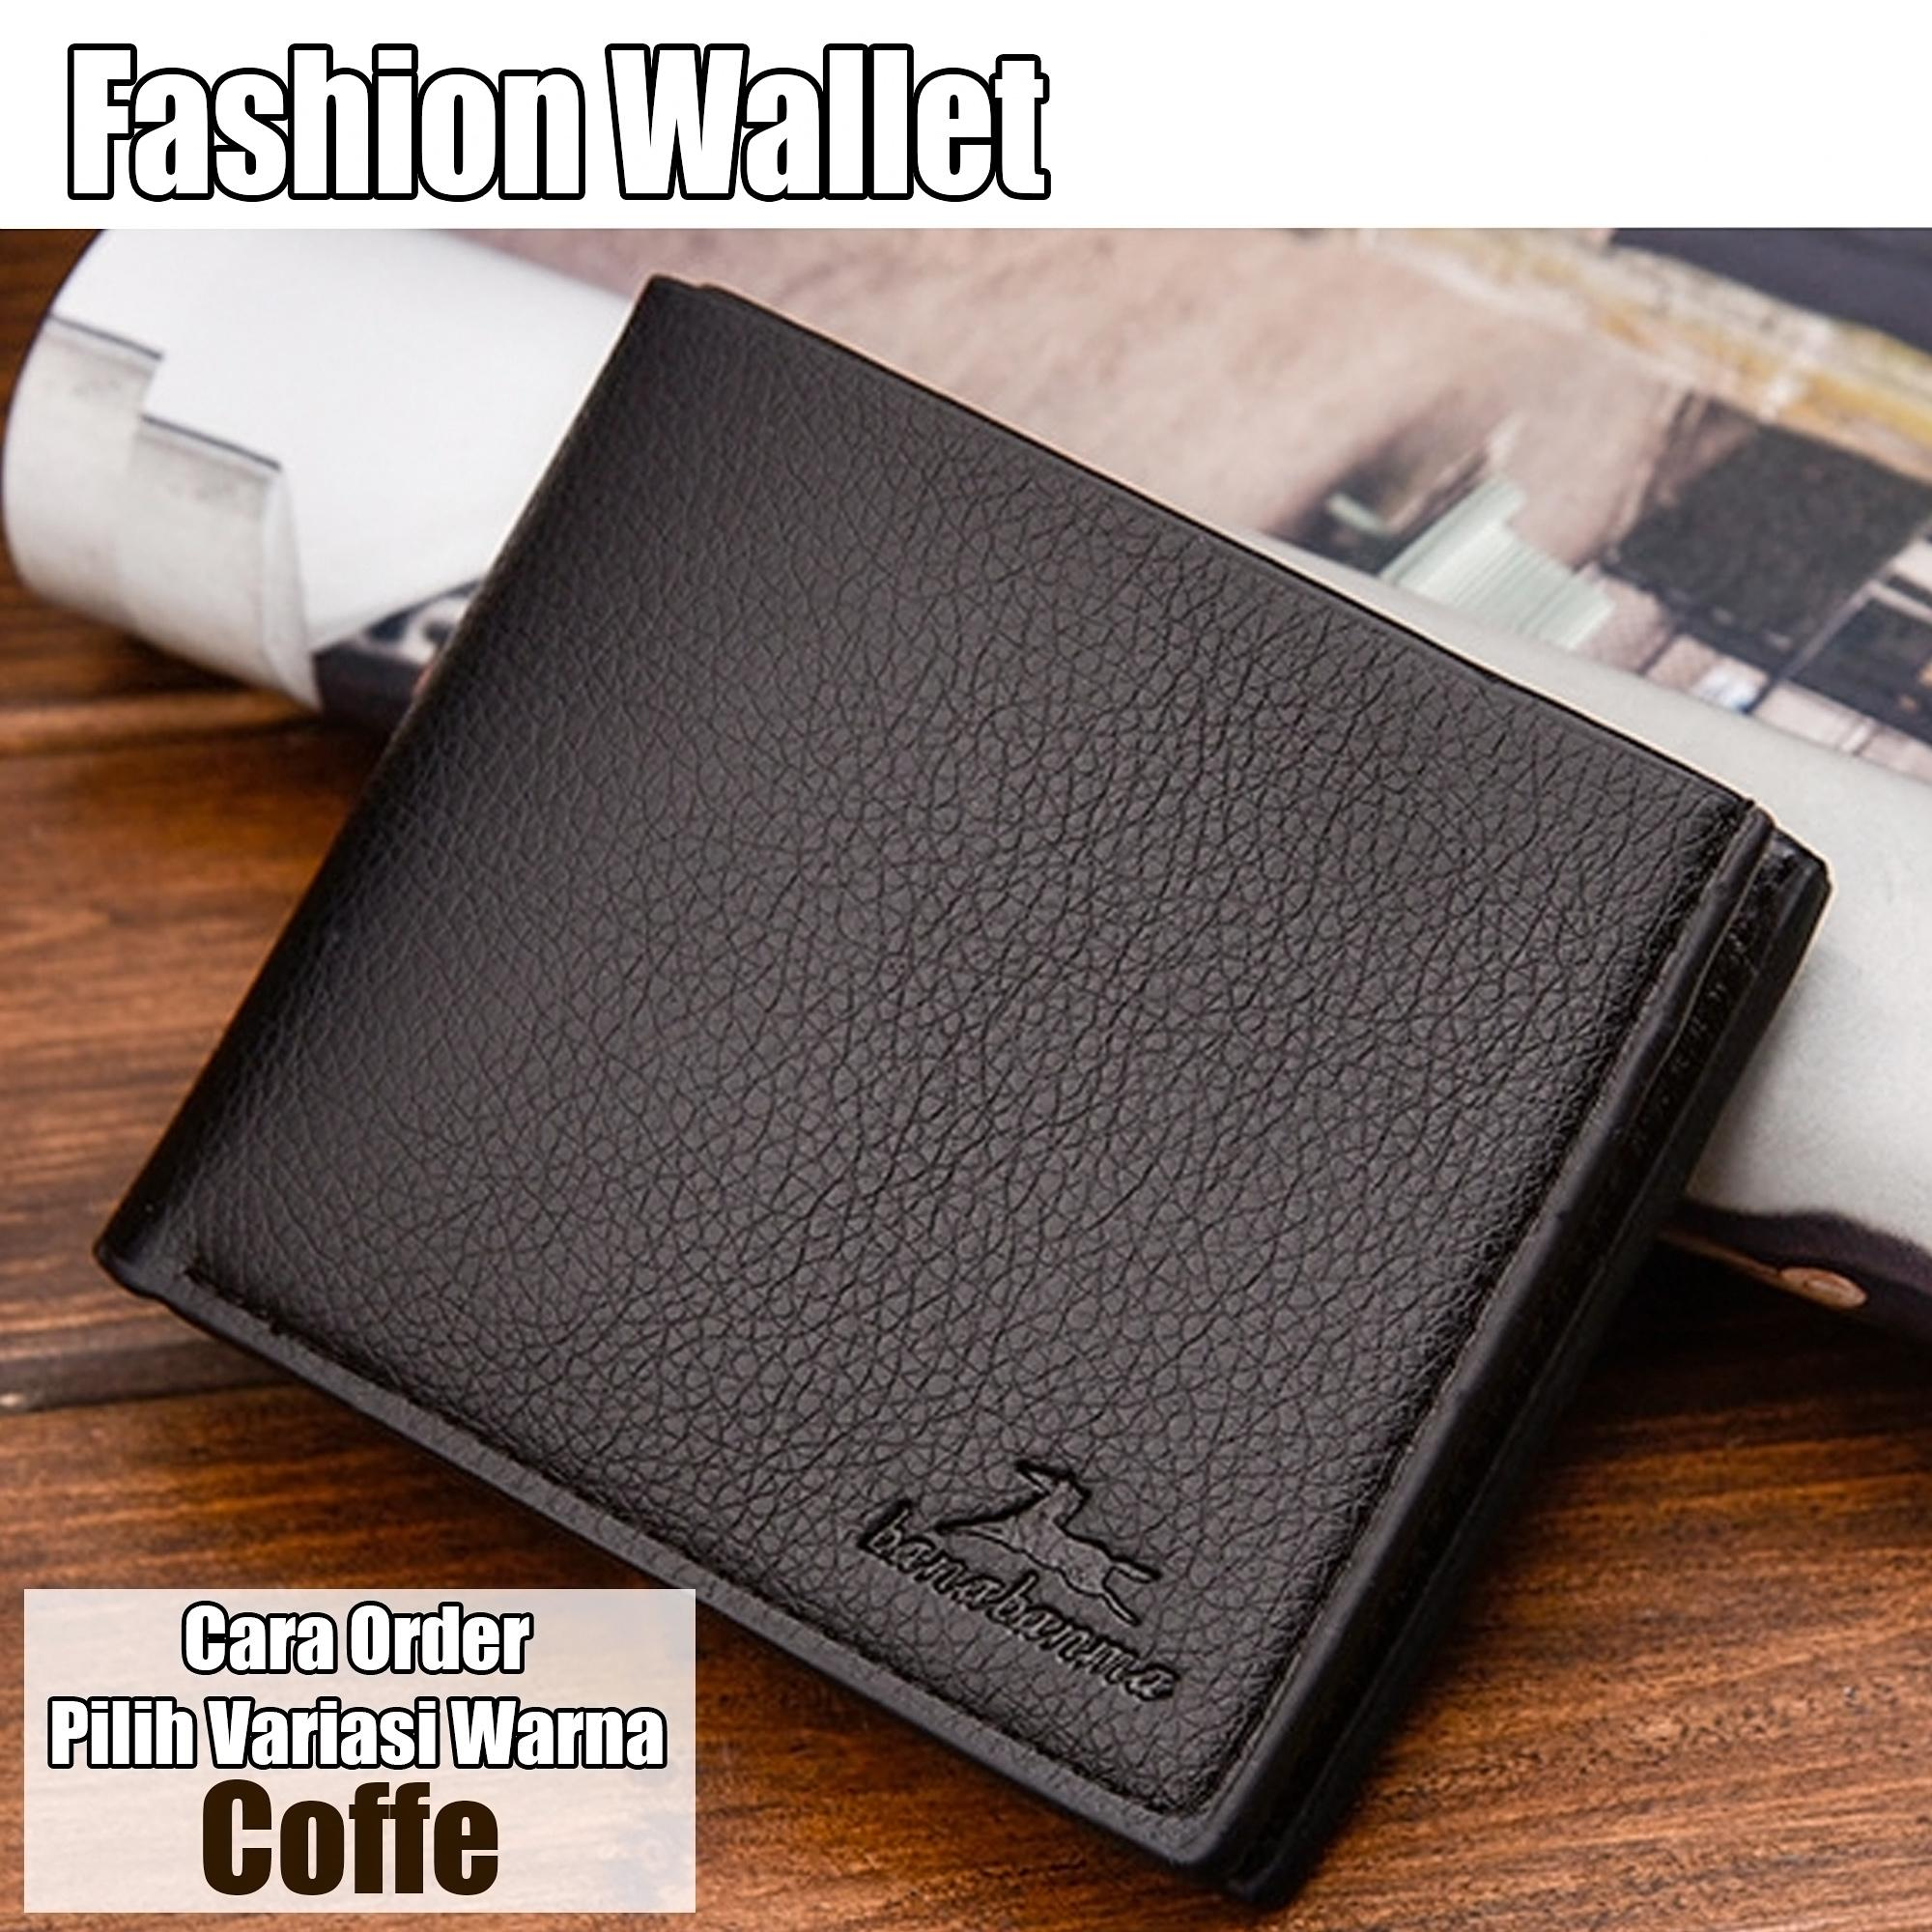 Dompet Pria Import Dompet Pria Dompet Kulit Mens Wallet Import Leather  Wallet Fashion Wallet 6cad0d7ff7